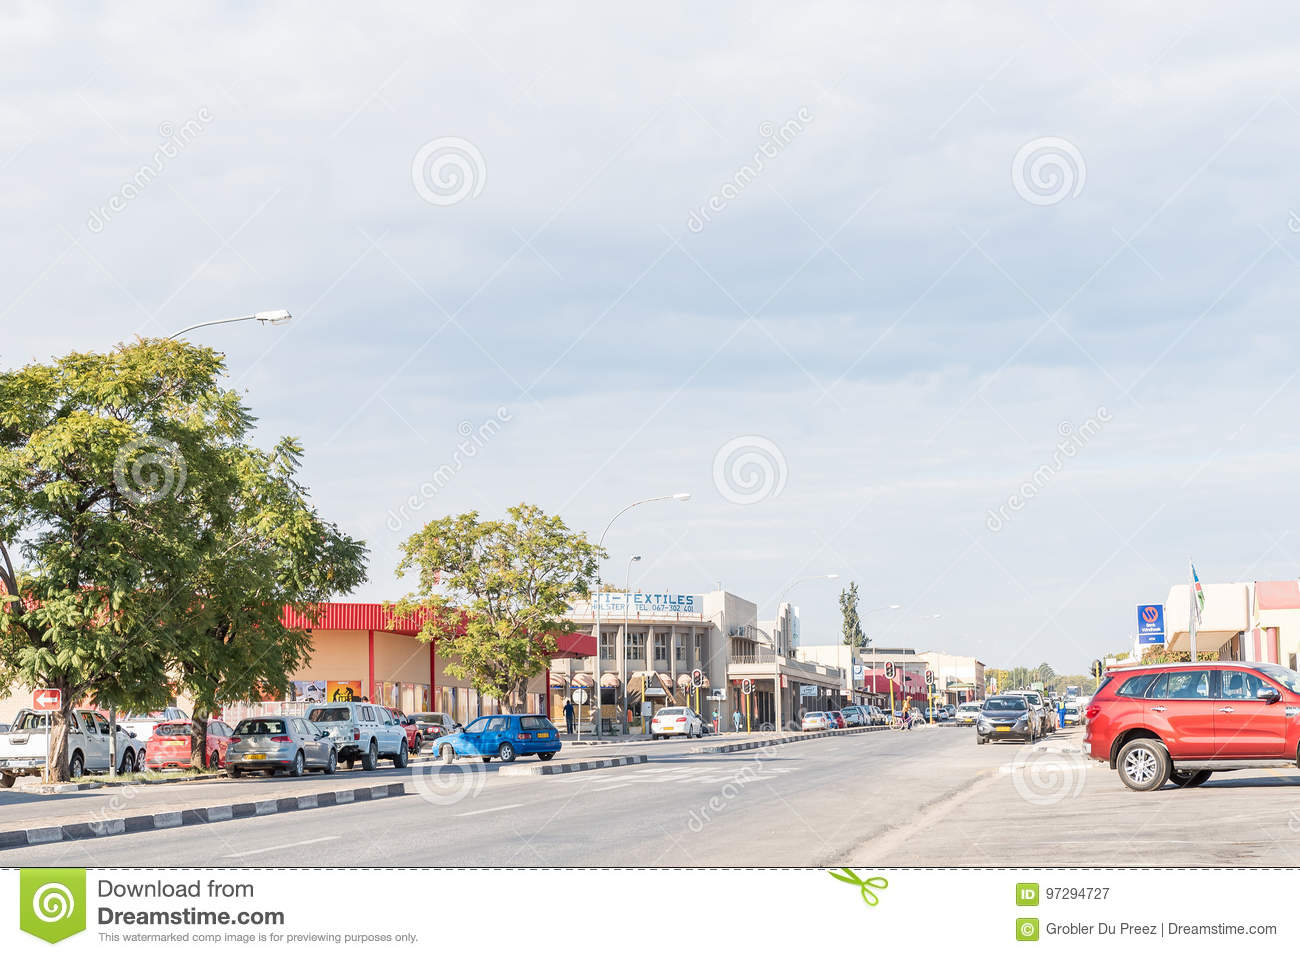 Street scene with several businesses and vehicles in Otjiwarongo